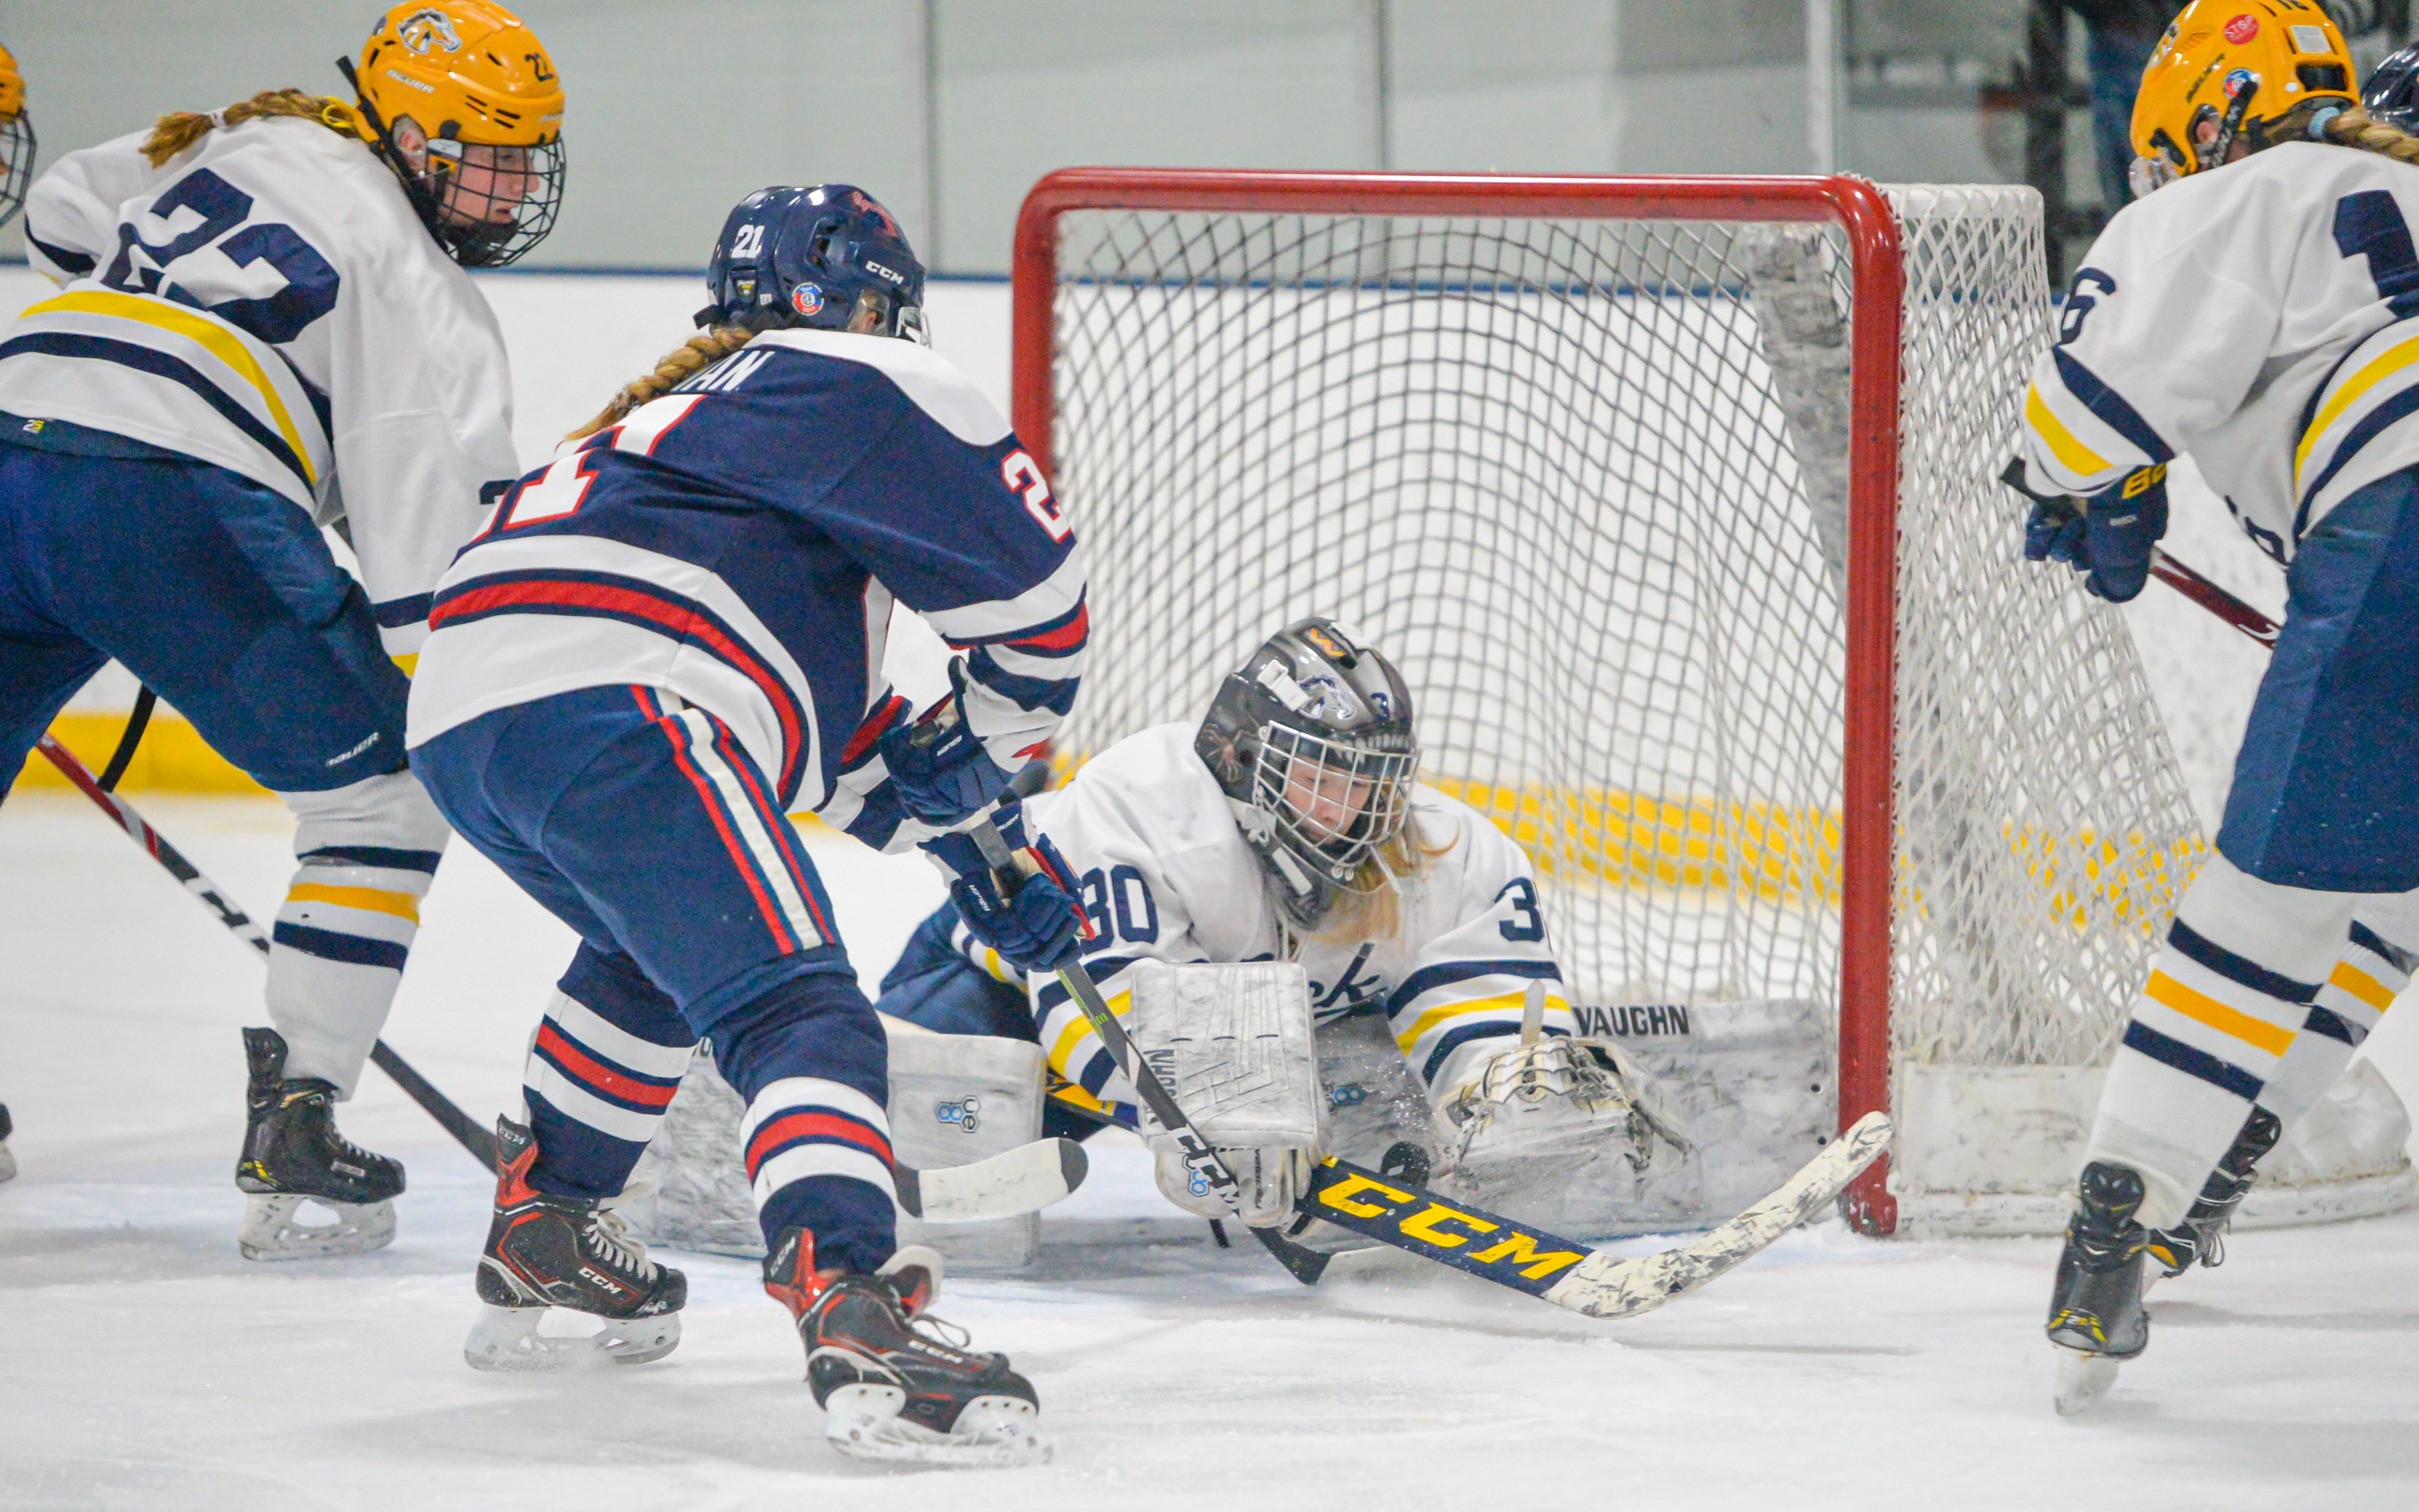 Orono's Kaeli Koopman attempts to force the puck into the net Wednesday night in the Class 1A, Section 5 final. The Spartans lost to the Mustangs 6-2. Photo by Earl J. Ebensteiner, SportsEngine